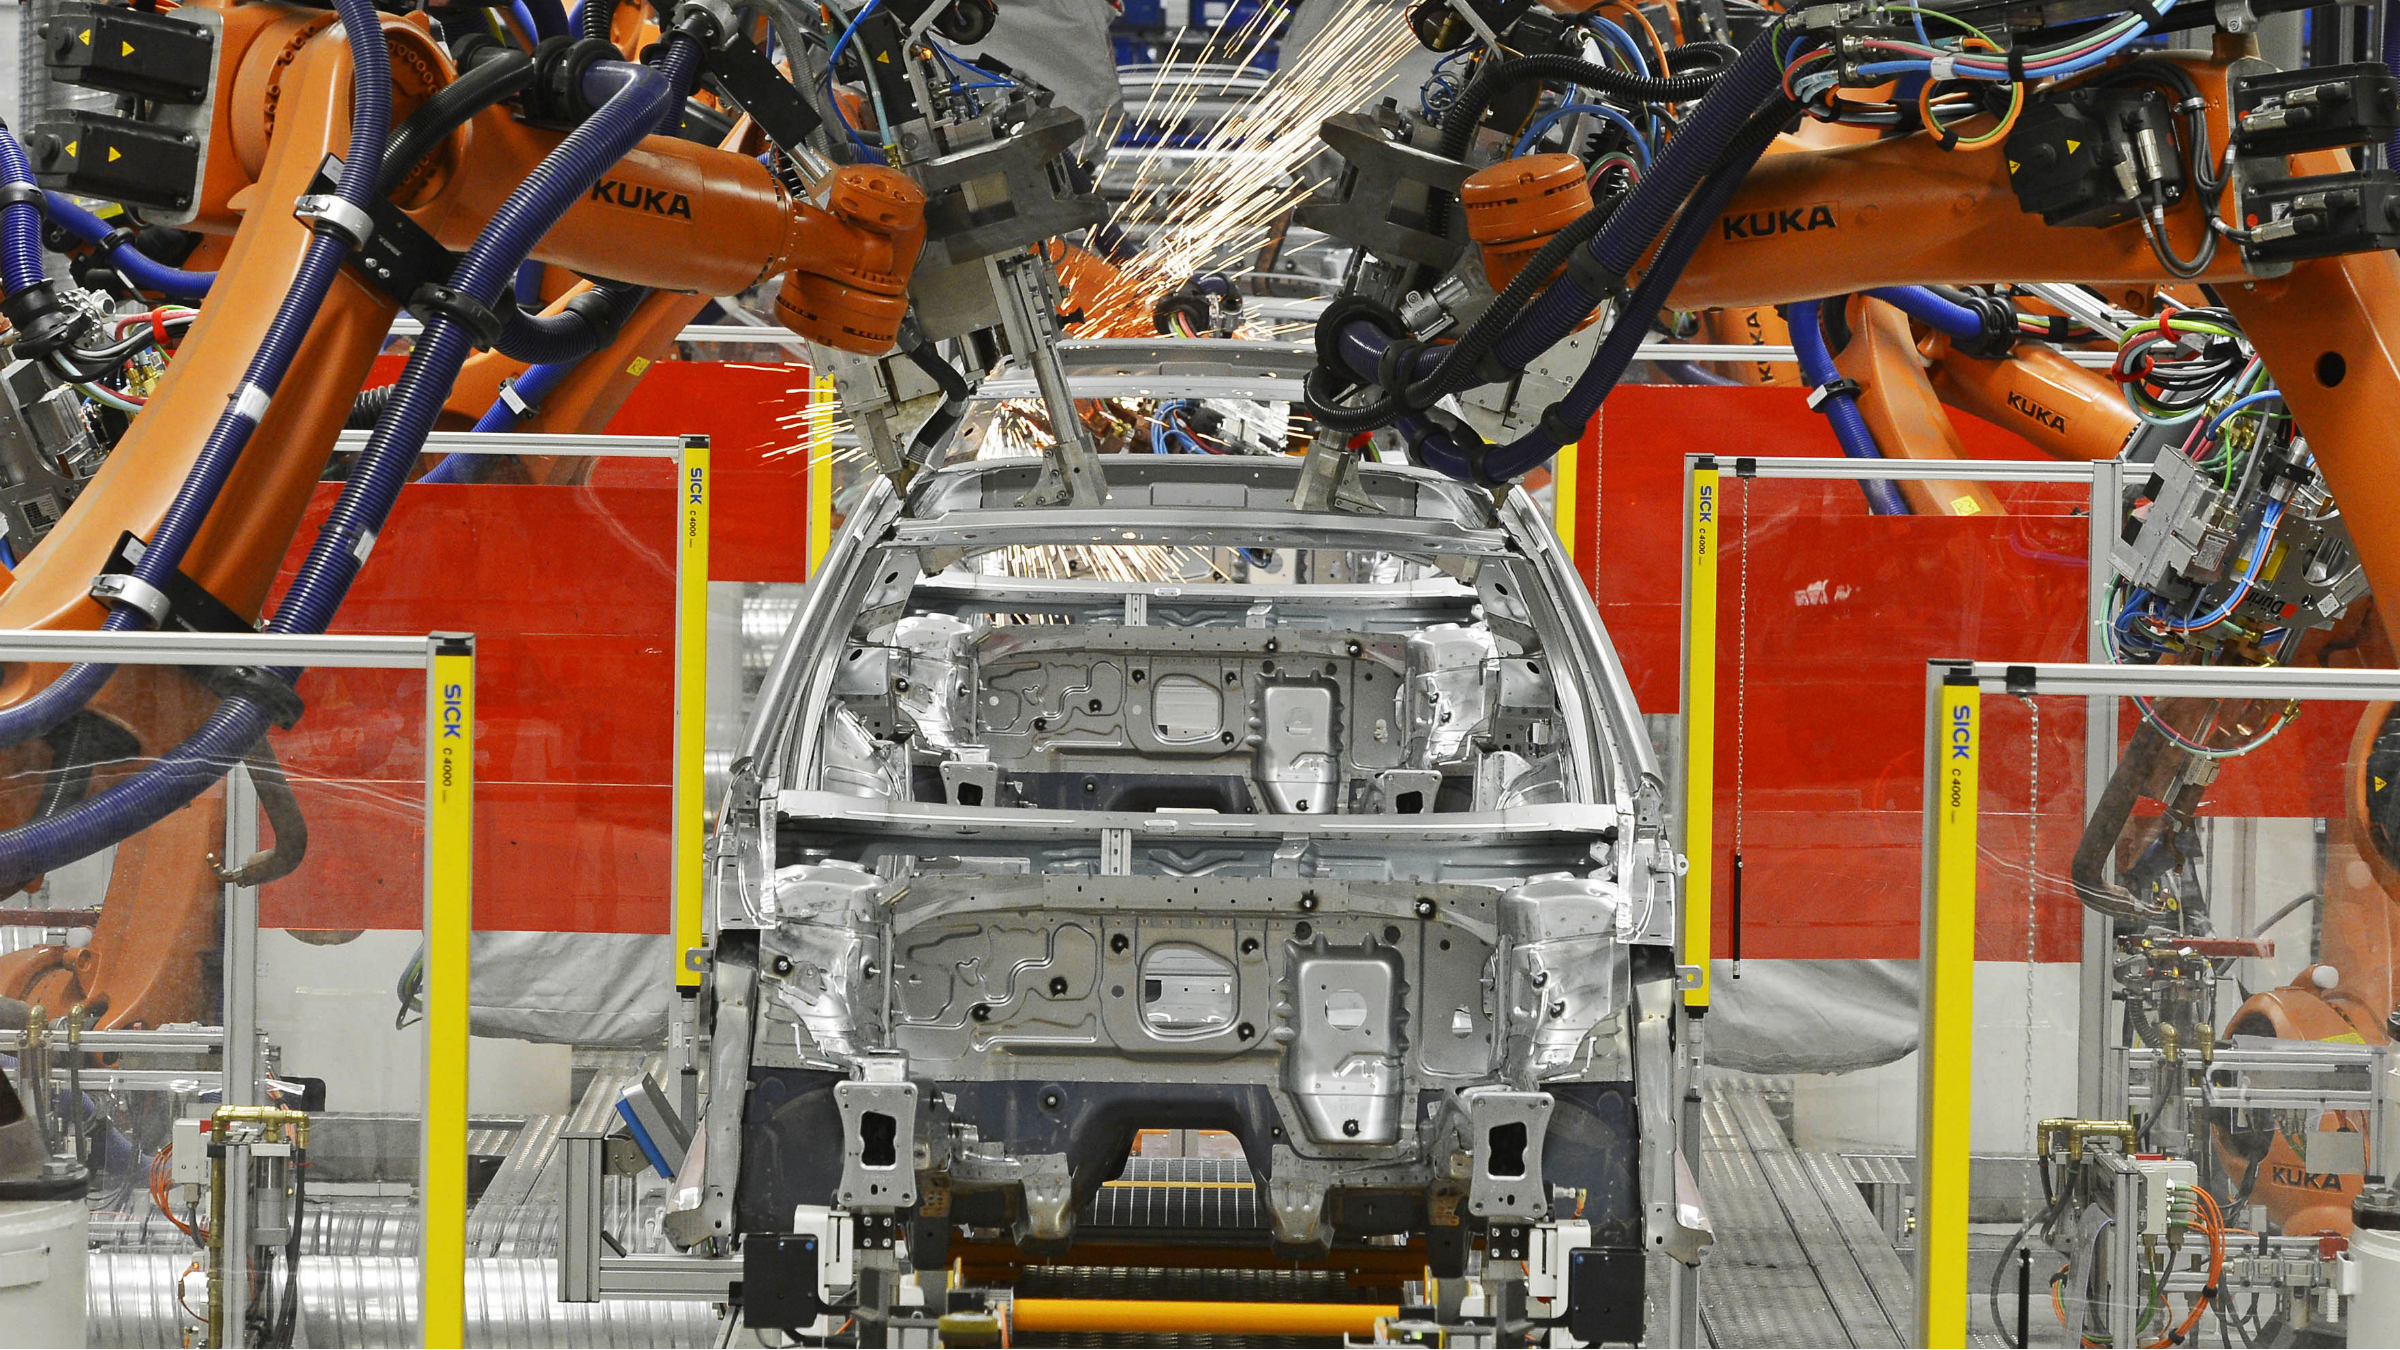 Robots weld Golf car bodies (Golf VII) during a press tour at the plant of the German manufacturer Volkswagen AG (VW) in Zwickau, central Germany, Friday, Nov. 9, 2012. More than 4 million vehicles (Golf and Passat) have left the production facilities since foundation of the Zwickau plant in 1990. (AP Photo/Jens Meyer